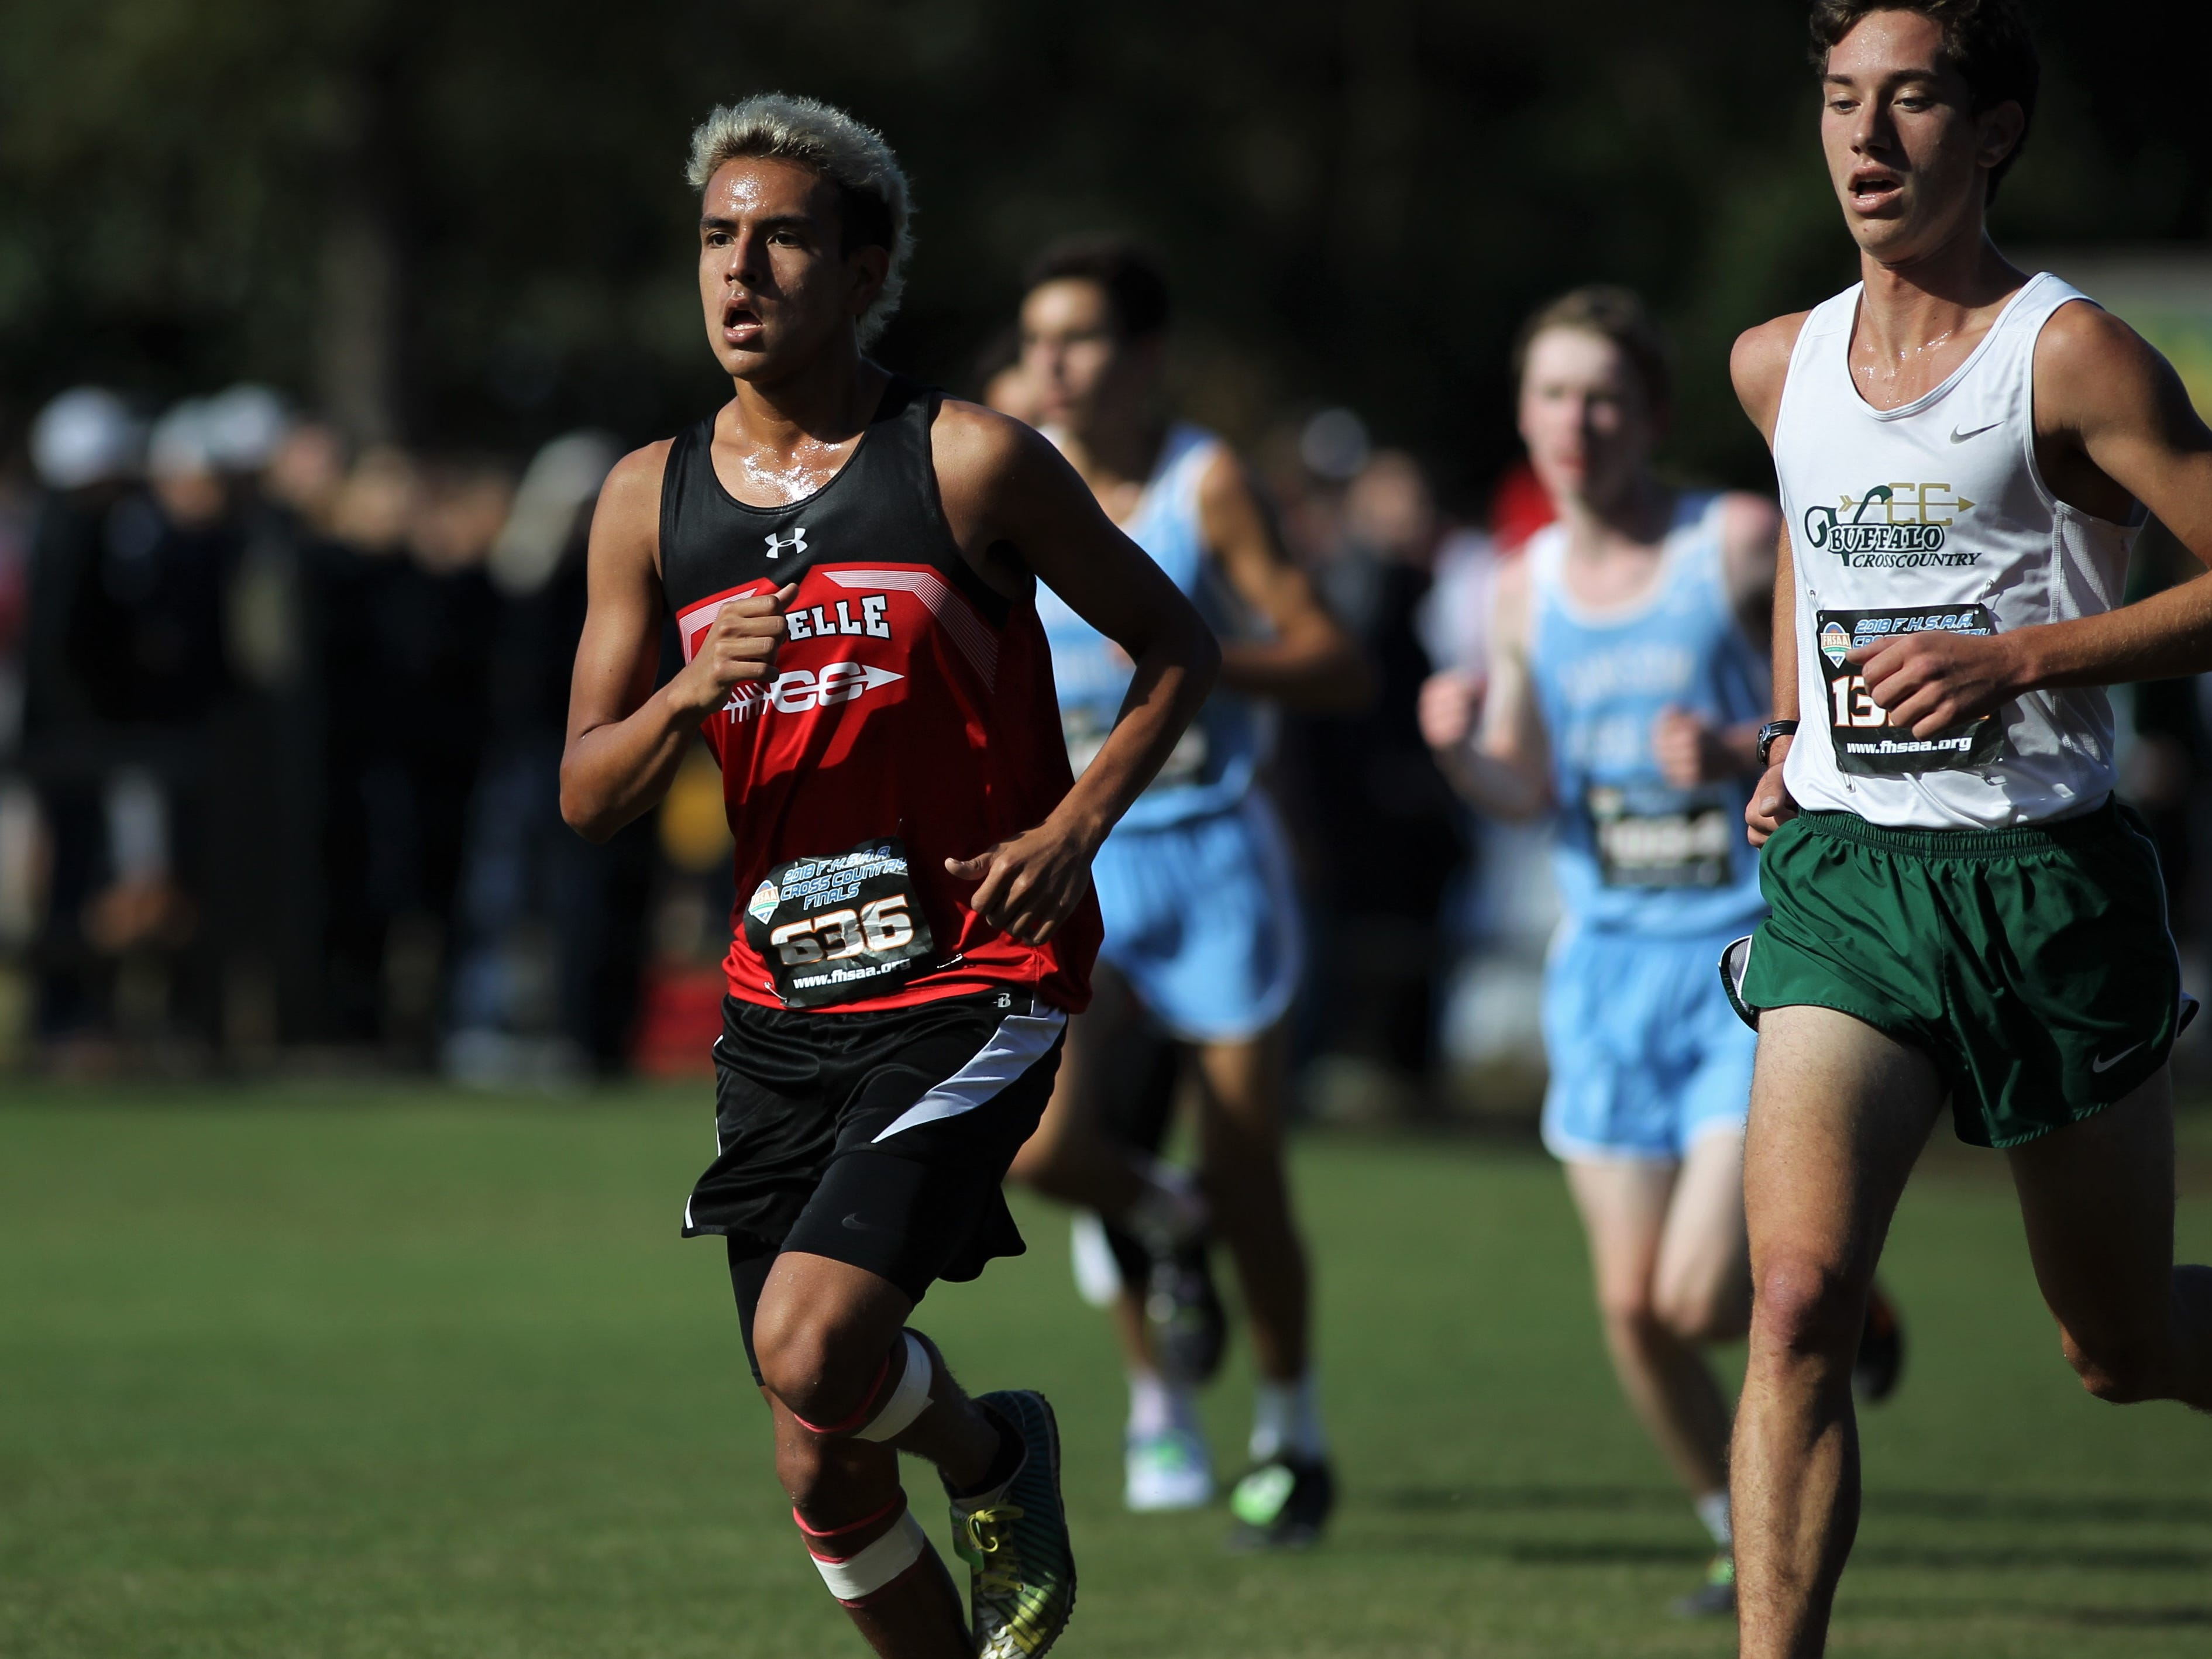 LaBelle's Marcos Rico races in the Class 2A boys race of the FHSAA Cross Country State Championships at Apalachee Regional Park in Tallahassee, Saturday, Nov. 11, 2018.